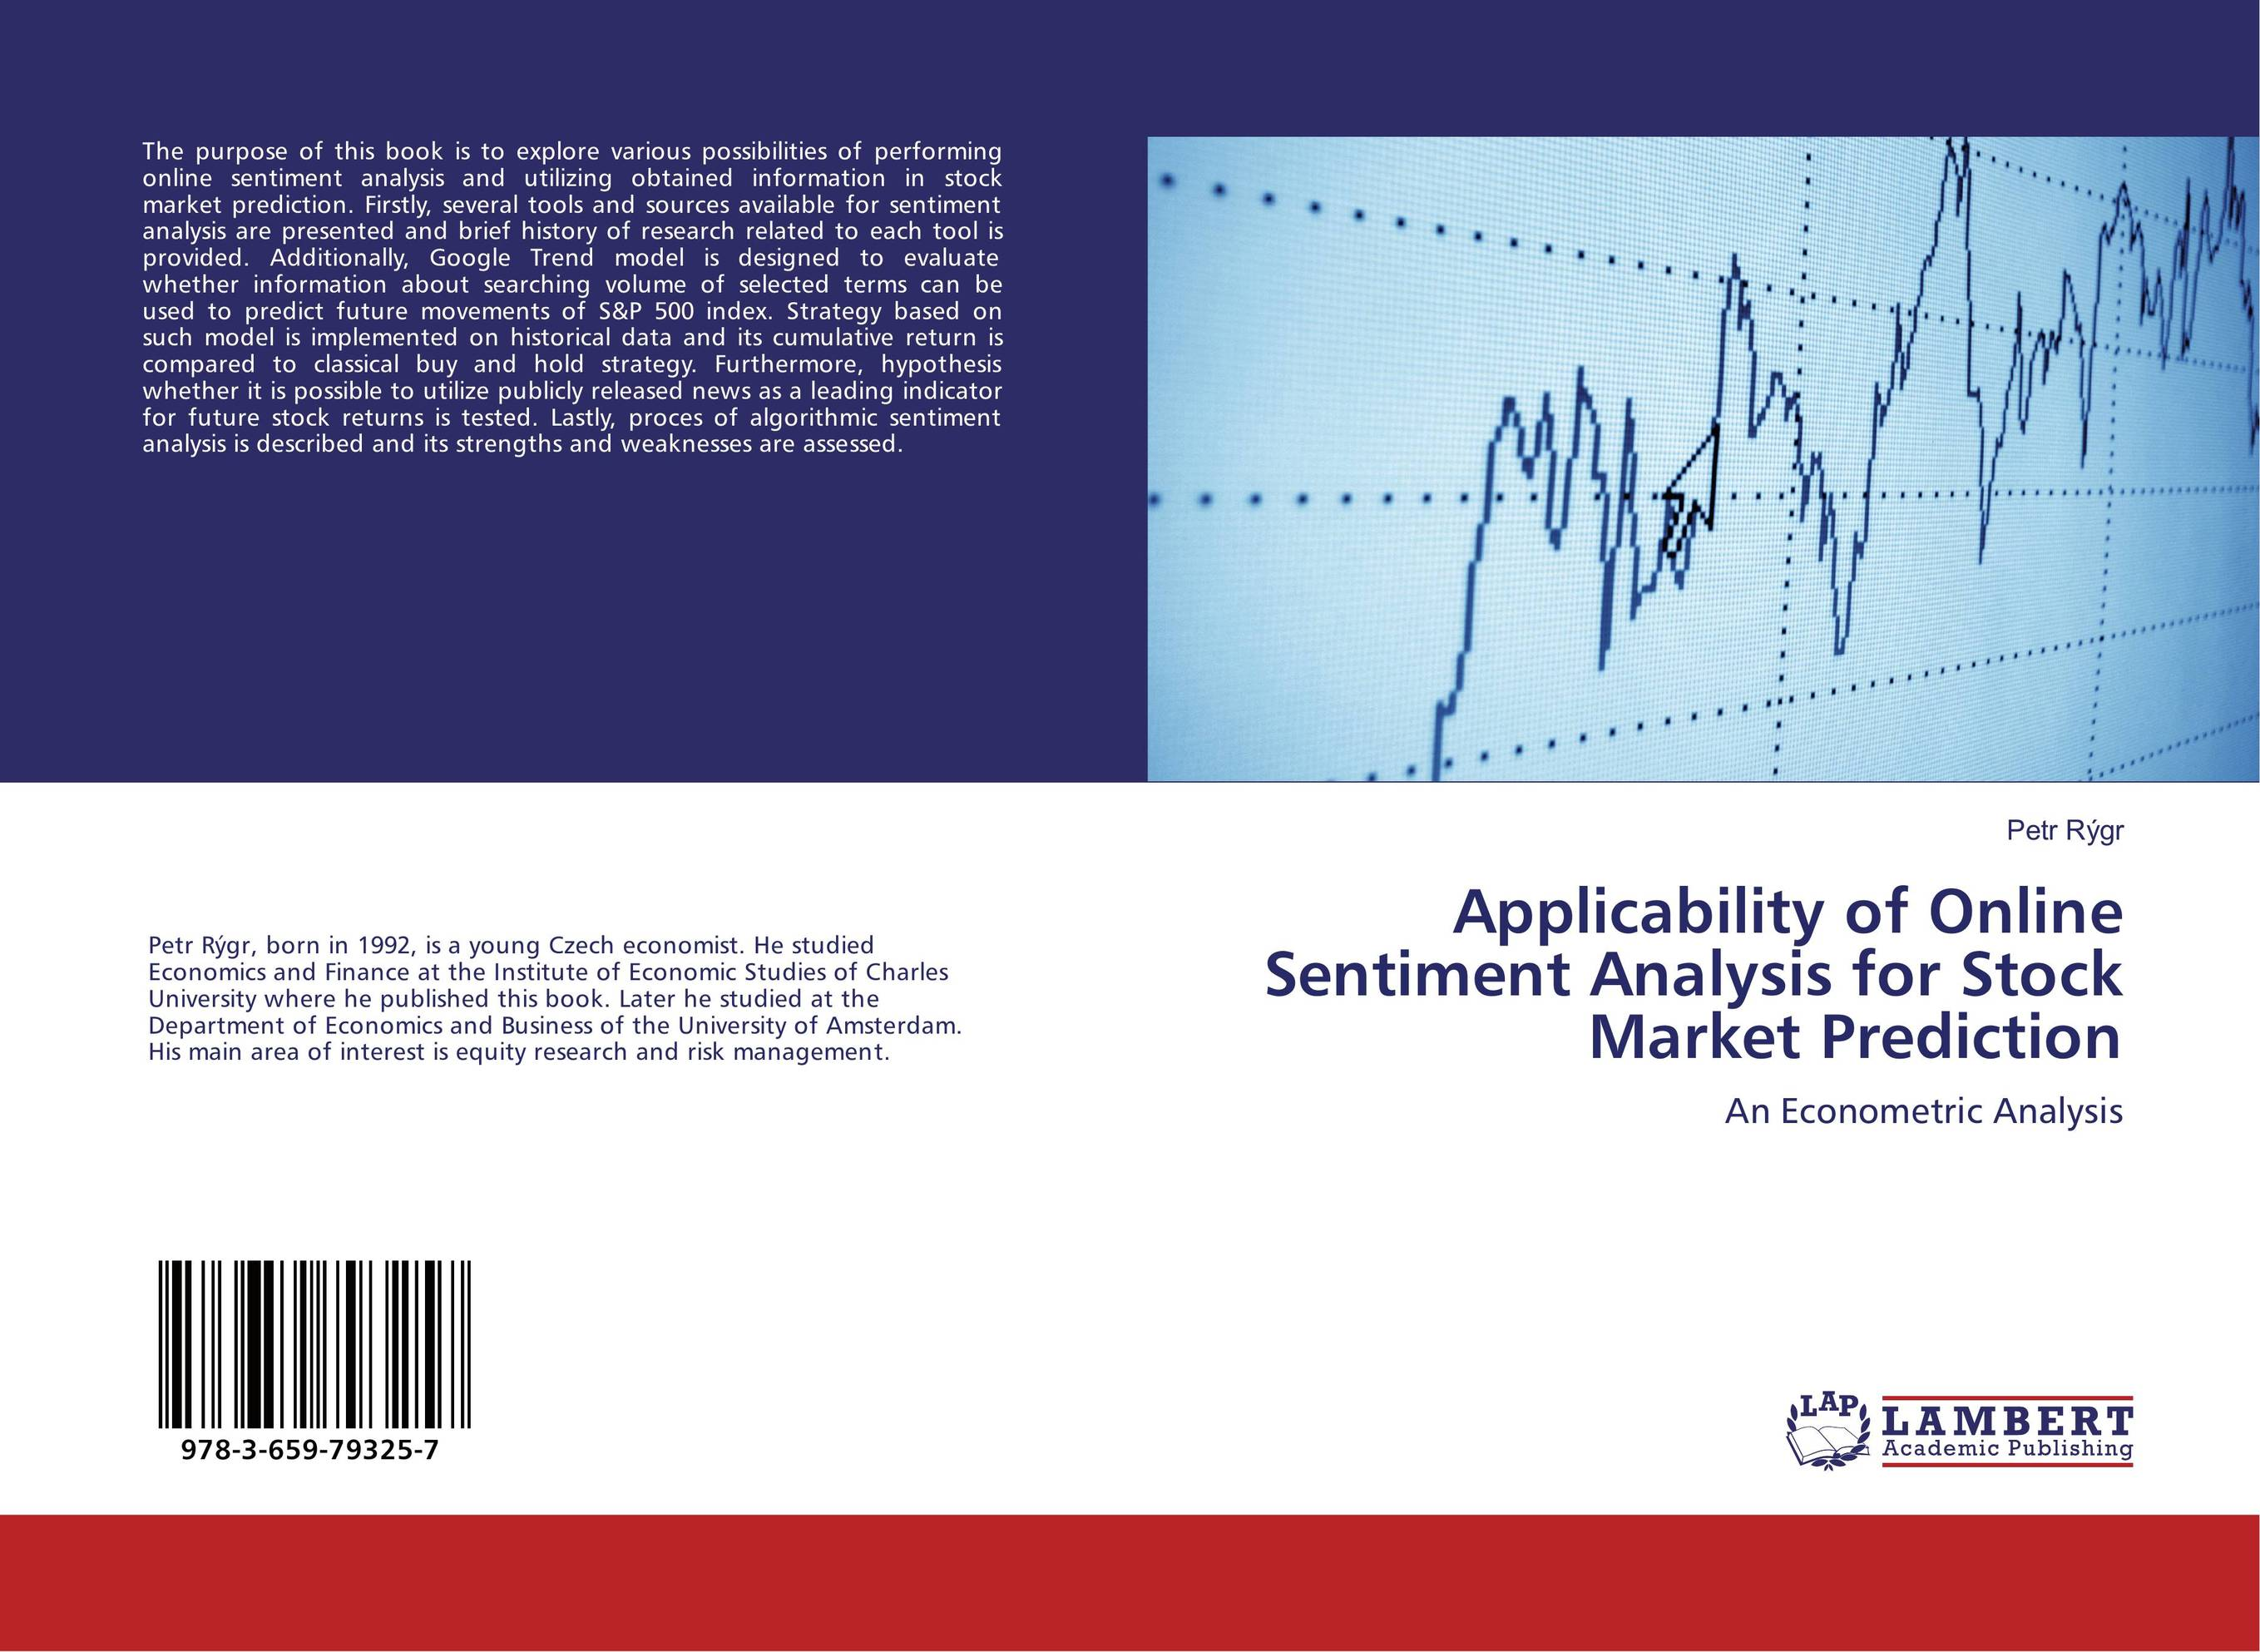 Applicability of Online Sentiment Analysis for Stock Market Prediction